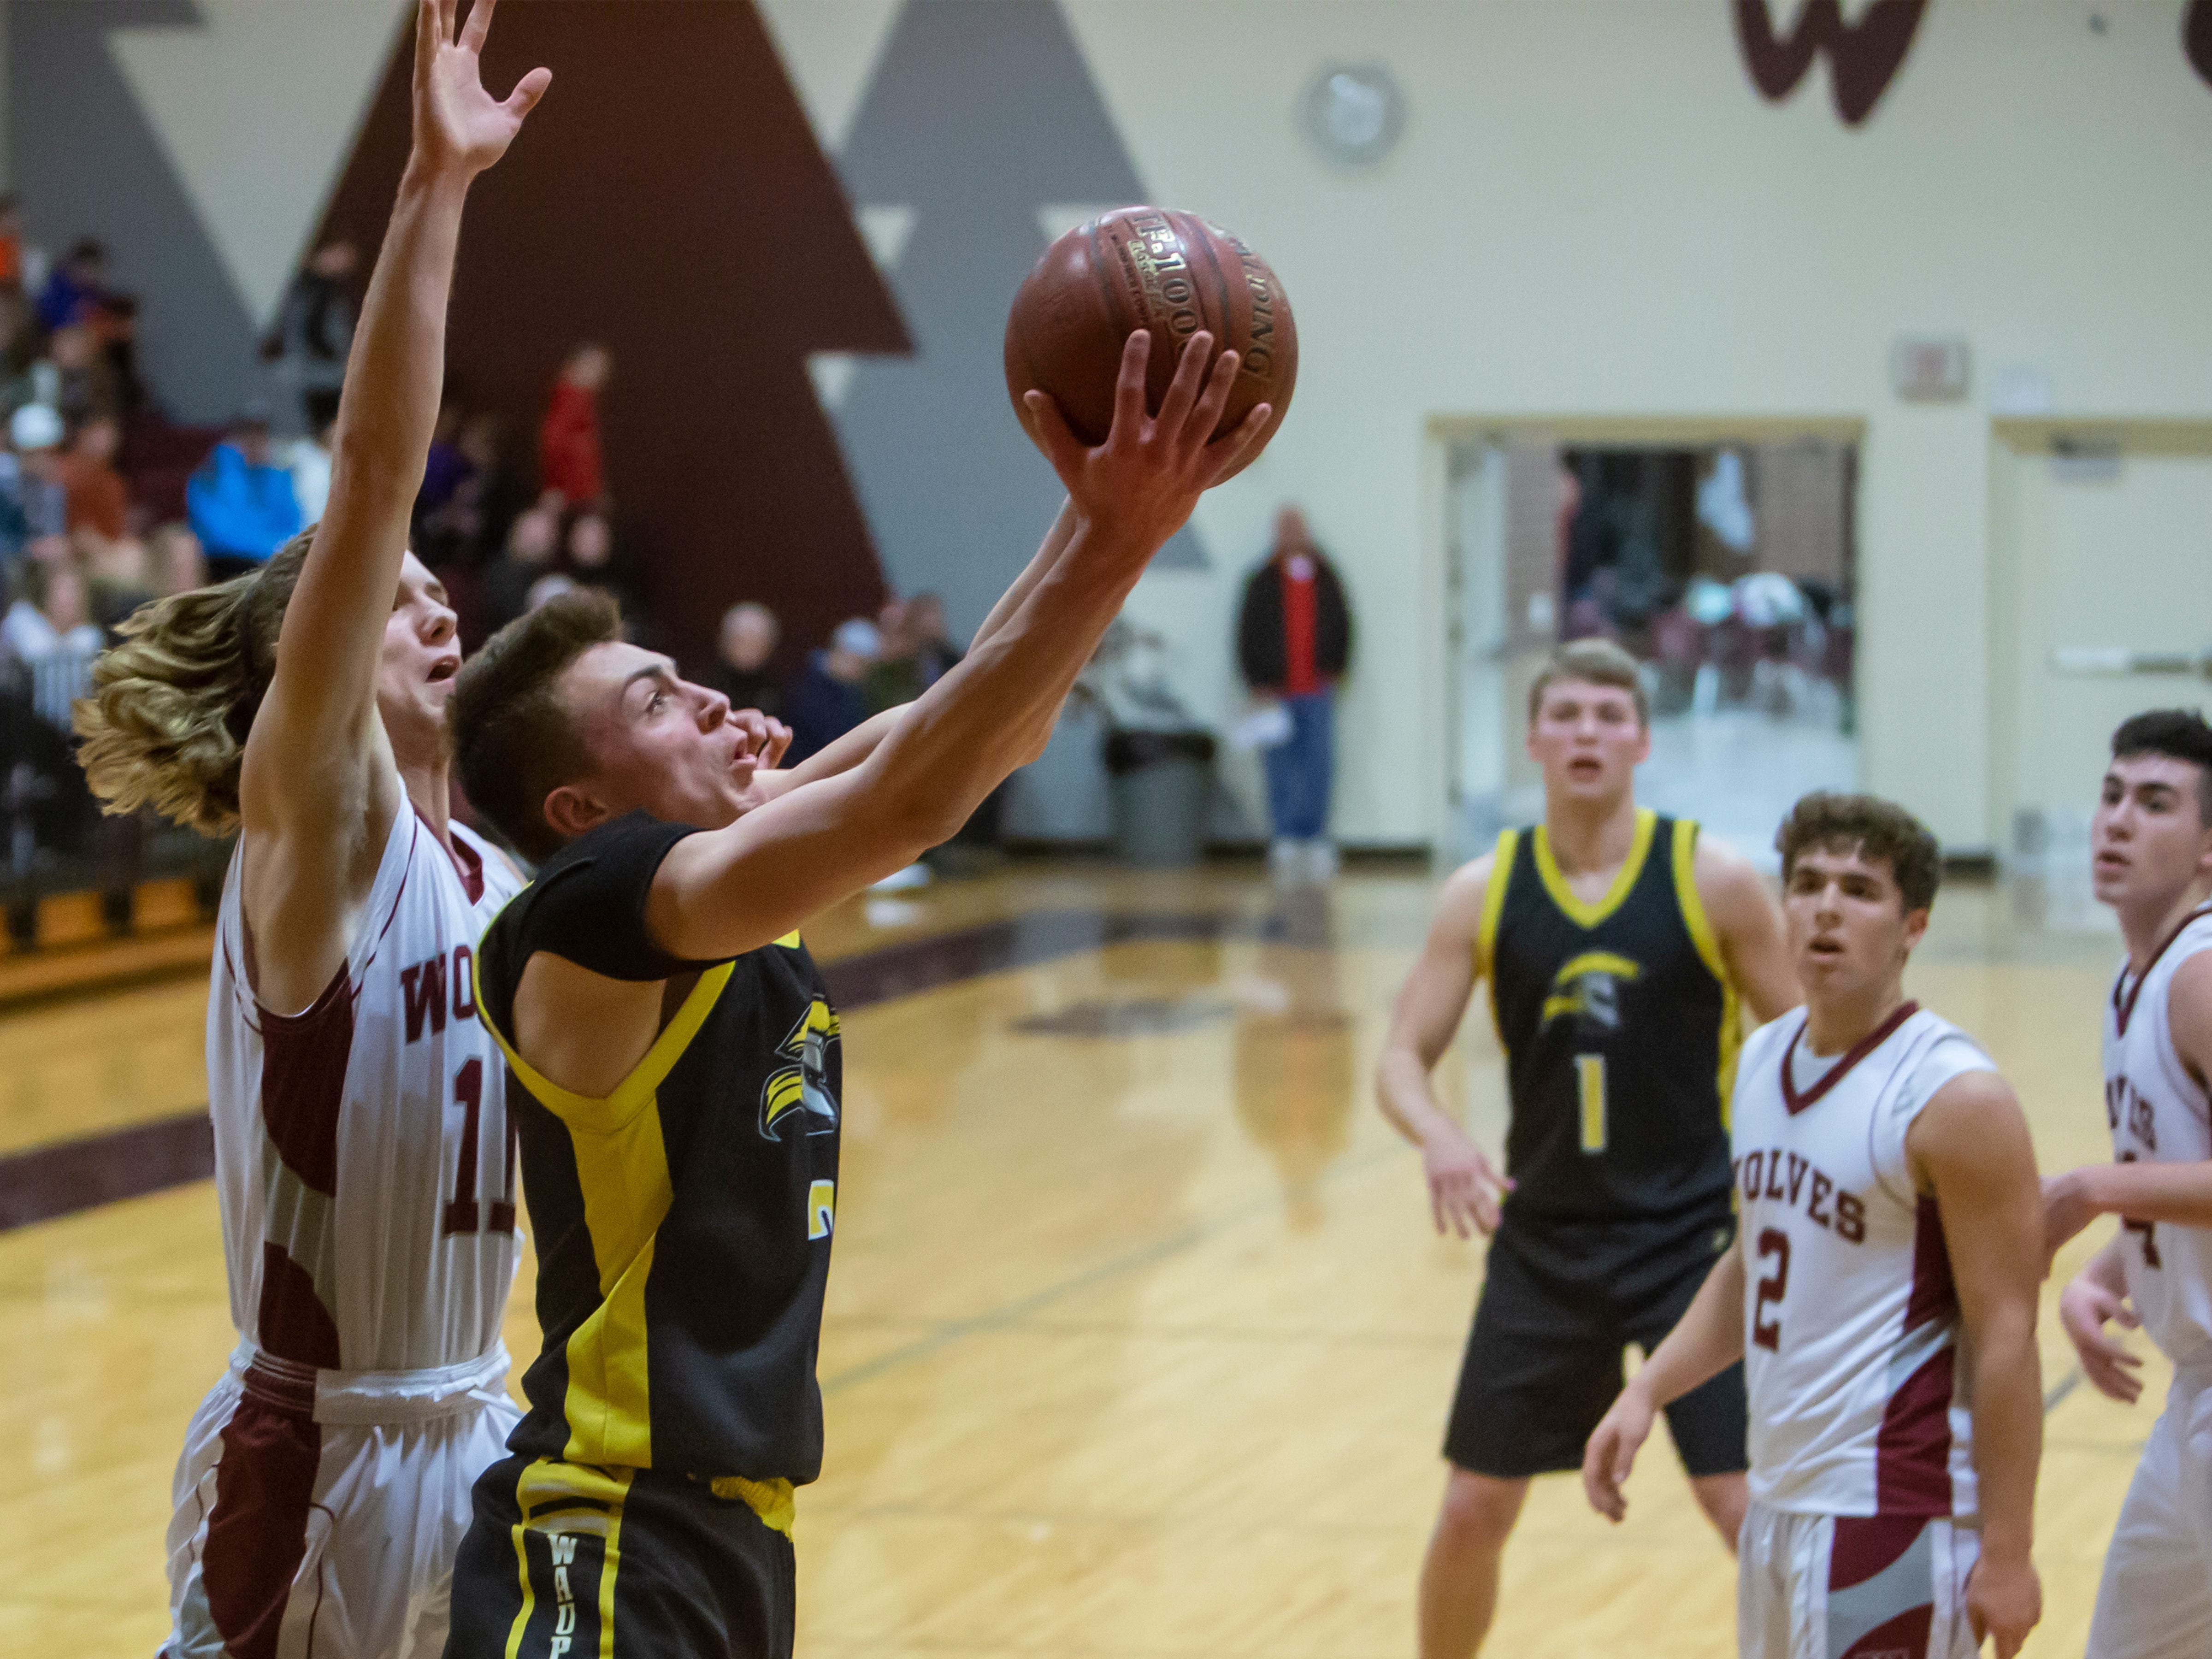 Waupun's Trevor VandeZande goes up for a shot playing at Winneconne High School on Thursday, Dec. 20, 2018.